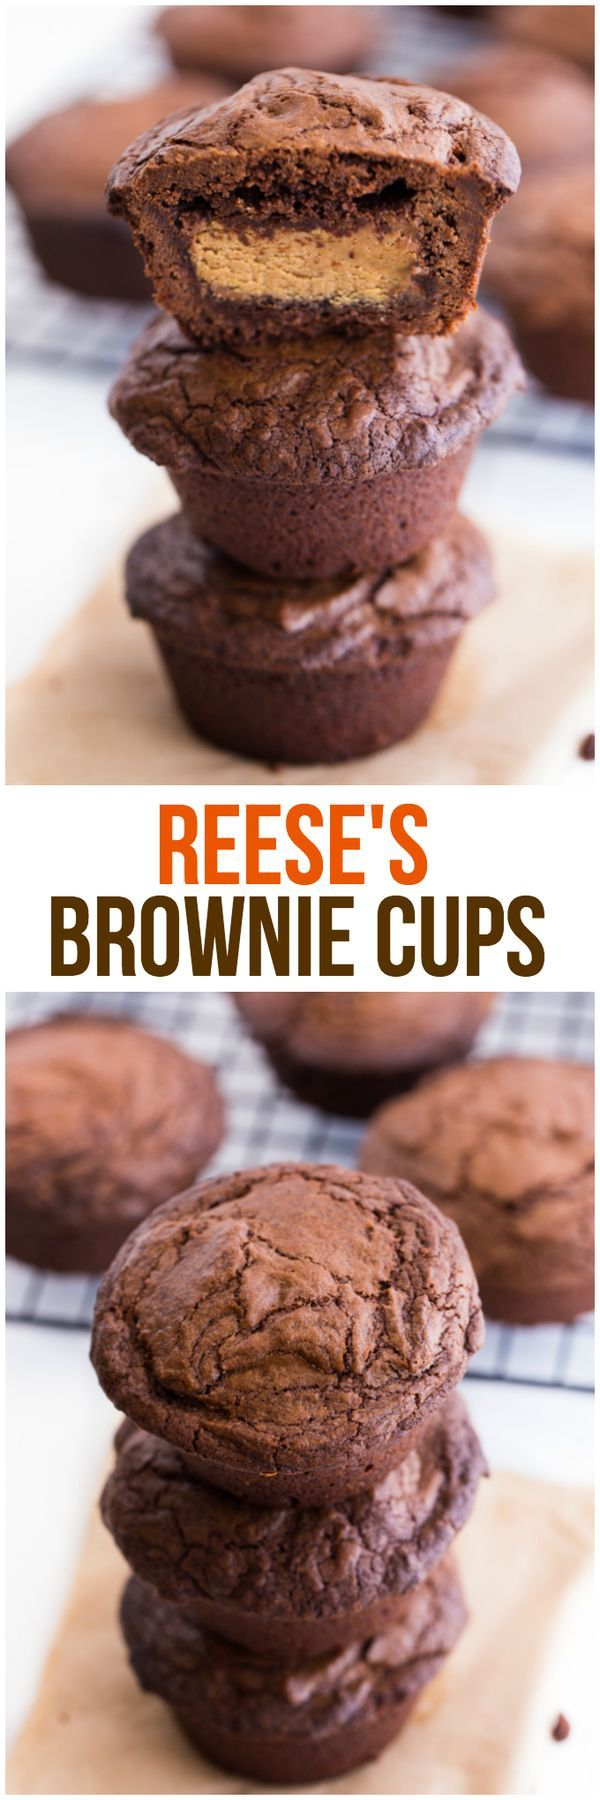 Reese's Stuffed Brownies Recipe - Giant Reese's Peanut Butter Cups are stuffed inside a rich chocolate brownie. Each bite is pure chocolate heaven!